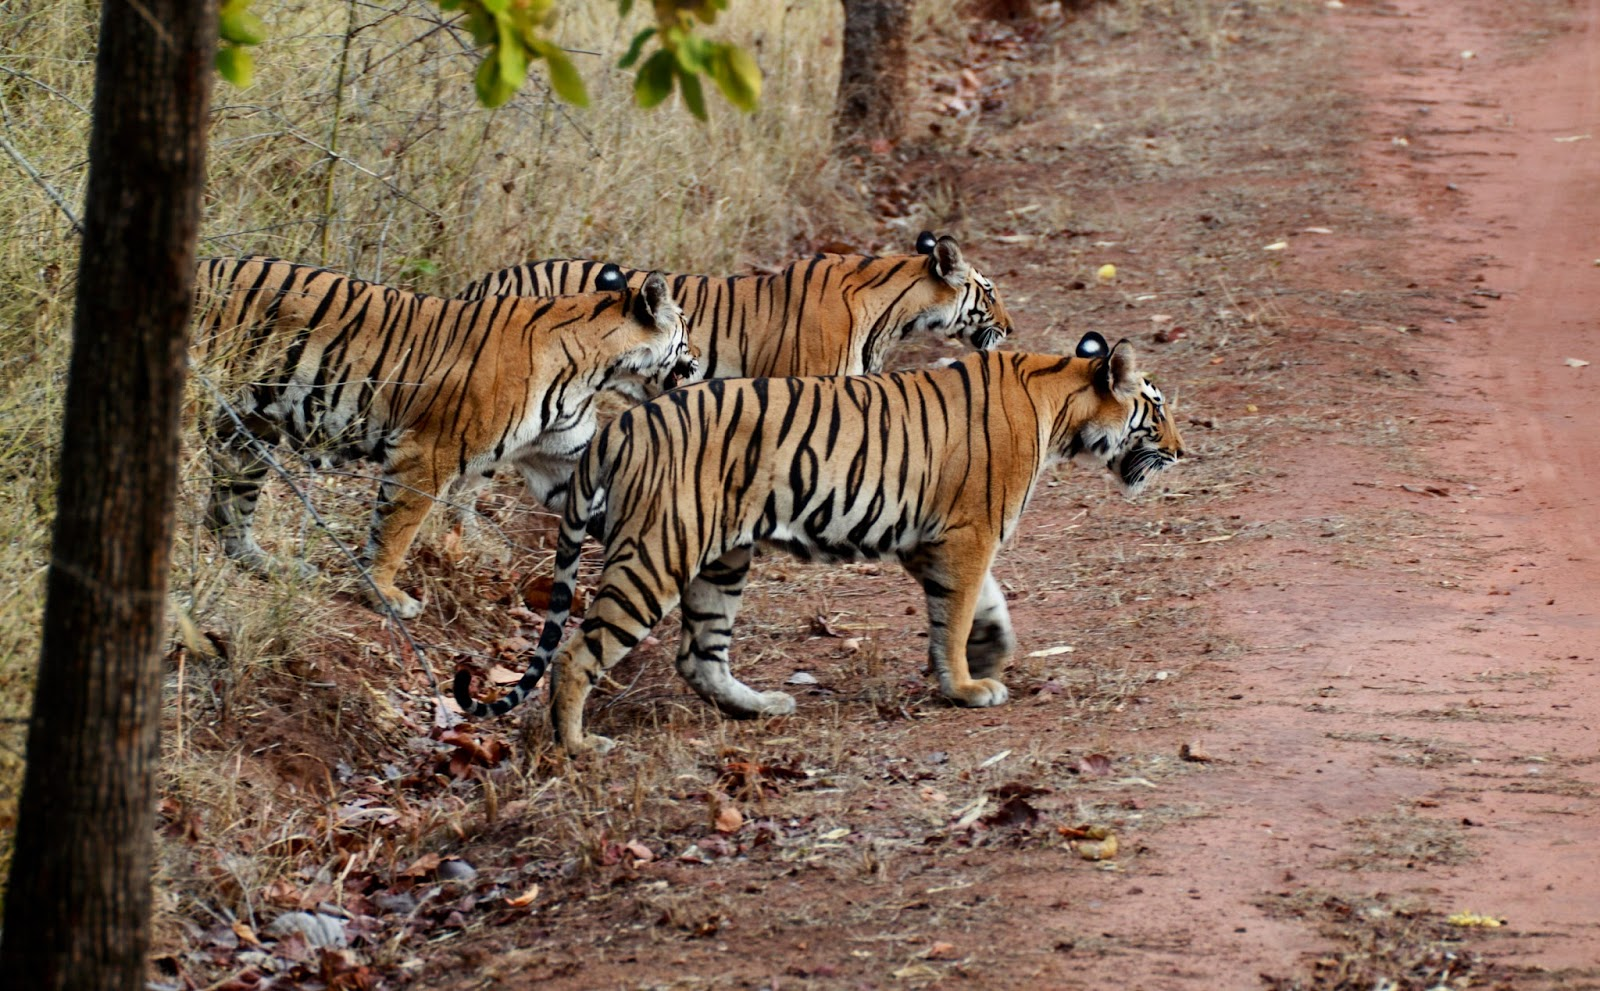 Maneaters The tiger and lion attacks on humans